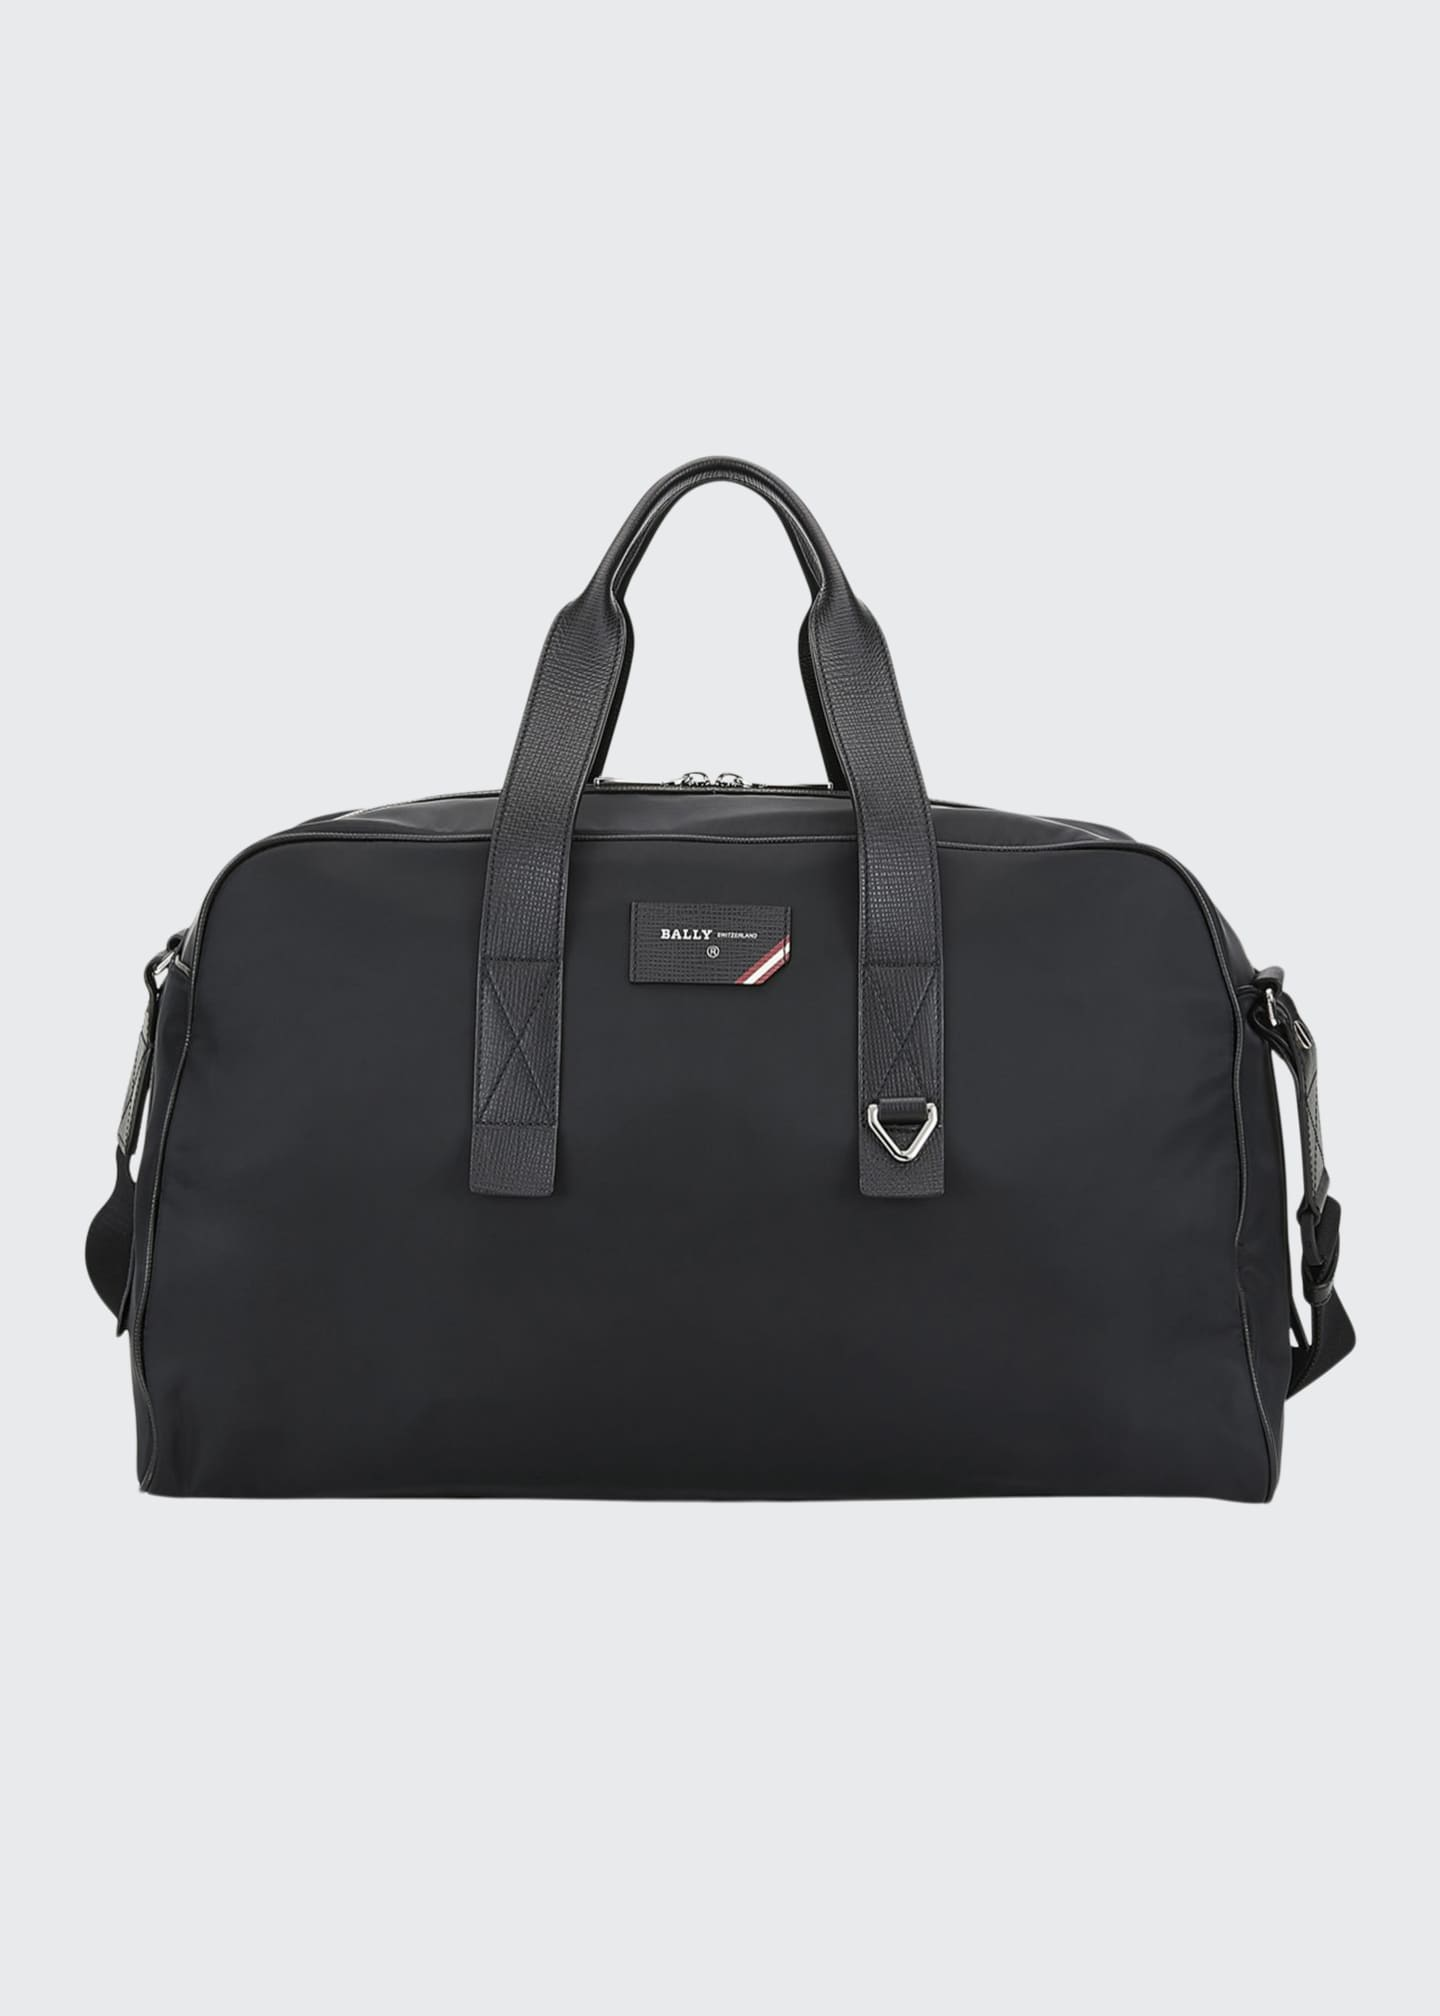 Bally Men's Flynn Weekender Duffel Bag